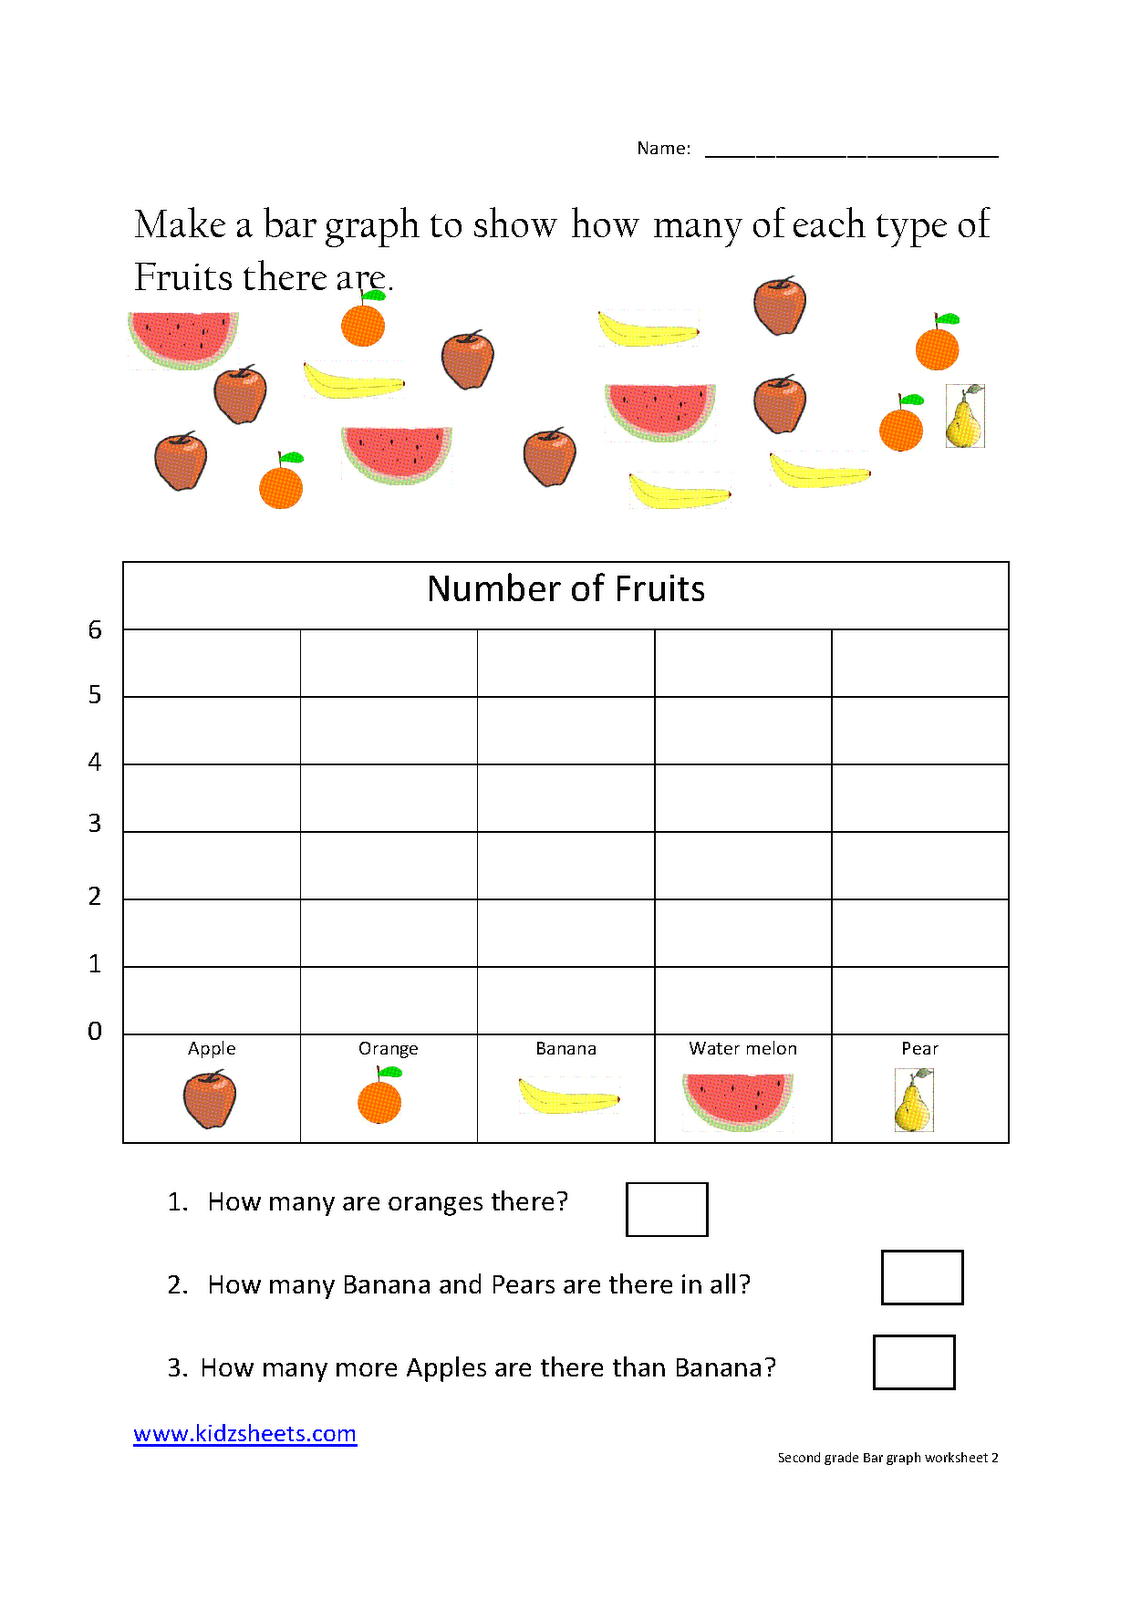 Worksheet Kindergarten Graphing kindergarten bar graph scalien birthday graphing worksheets worksheet 1000